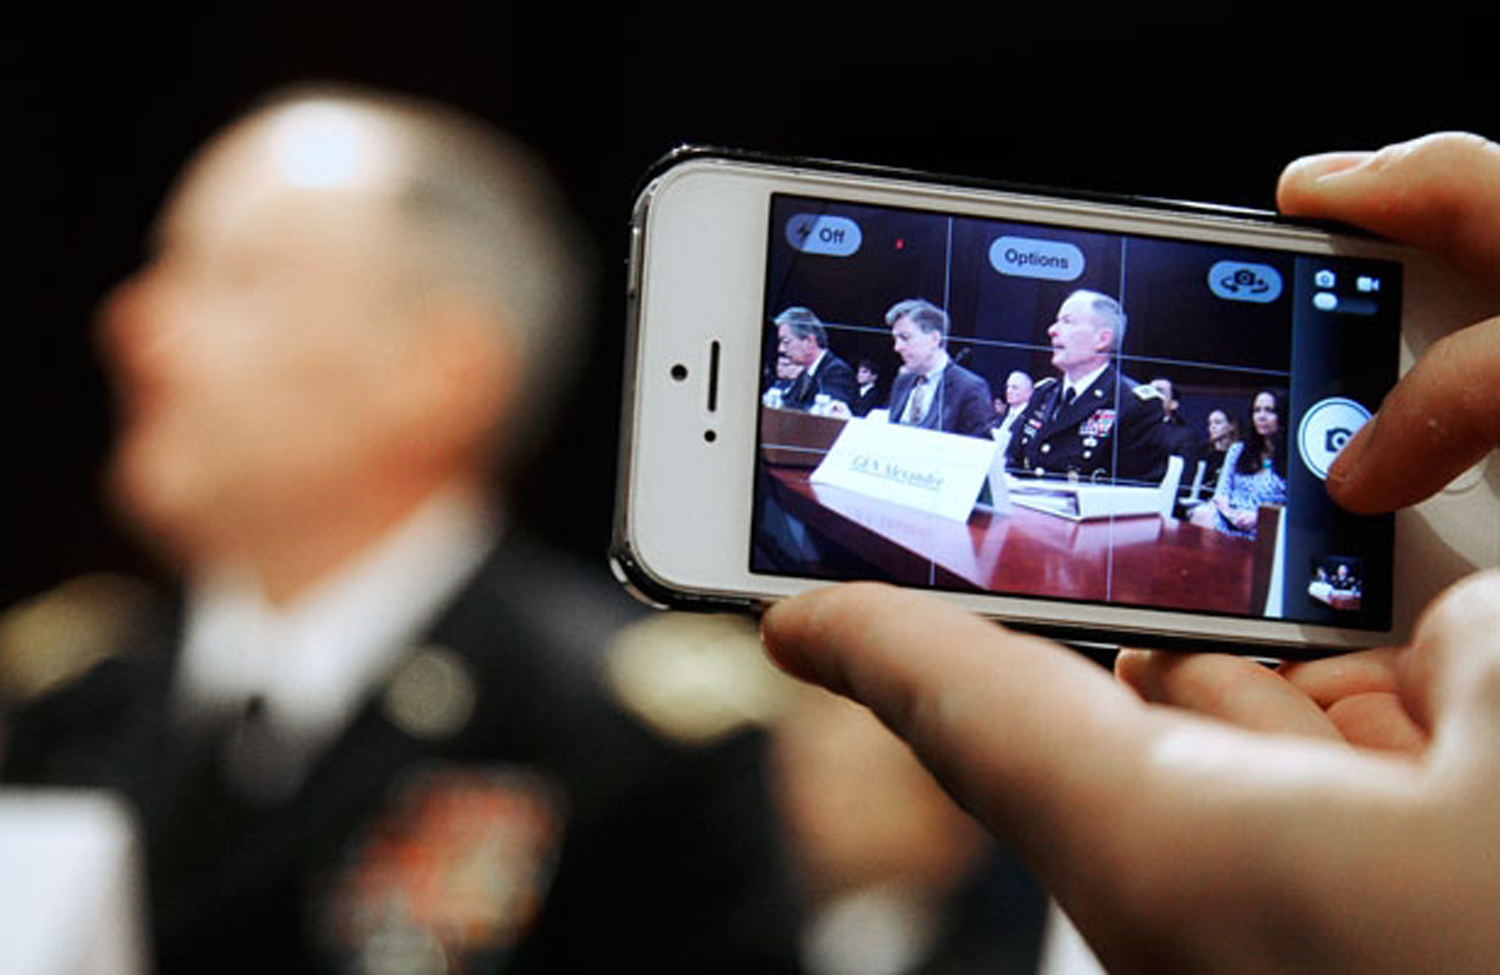 A-reporter-takes-a-mobile-phone-picture-of-National-Security-Agency-NSA-Director-U.S.-Army-General-Keith-Alexander